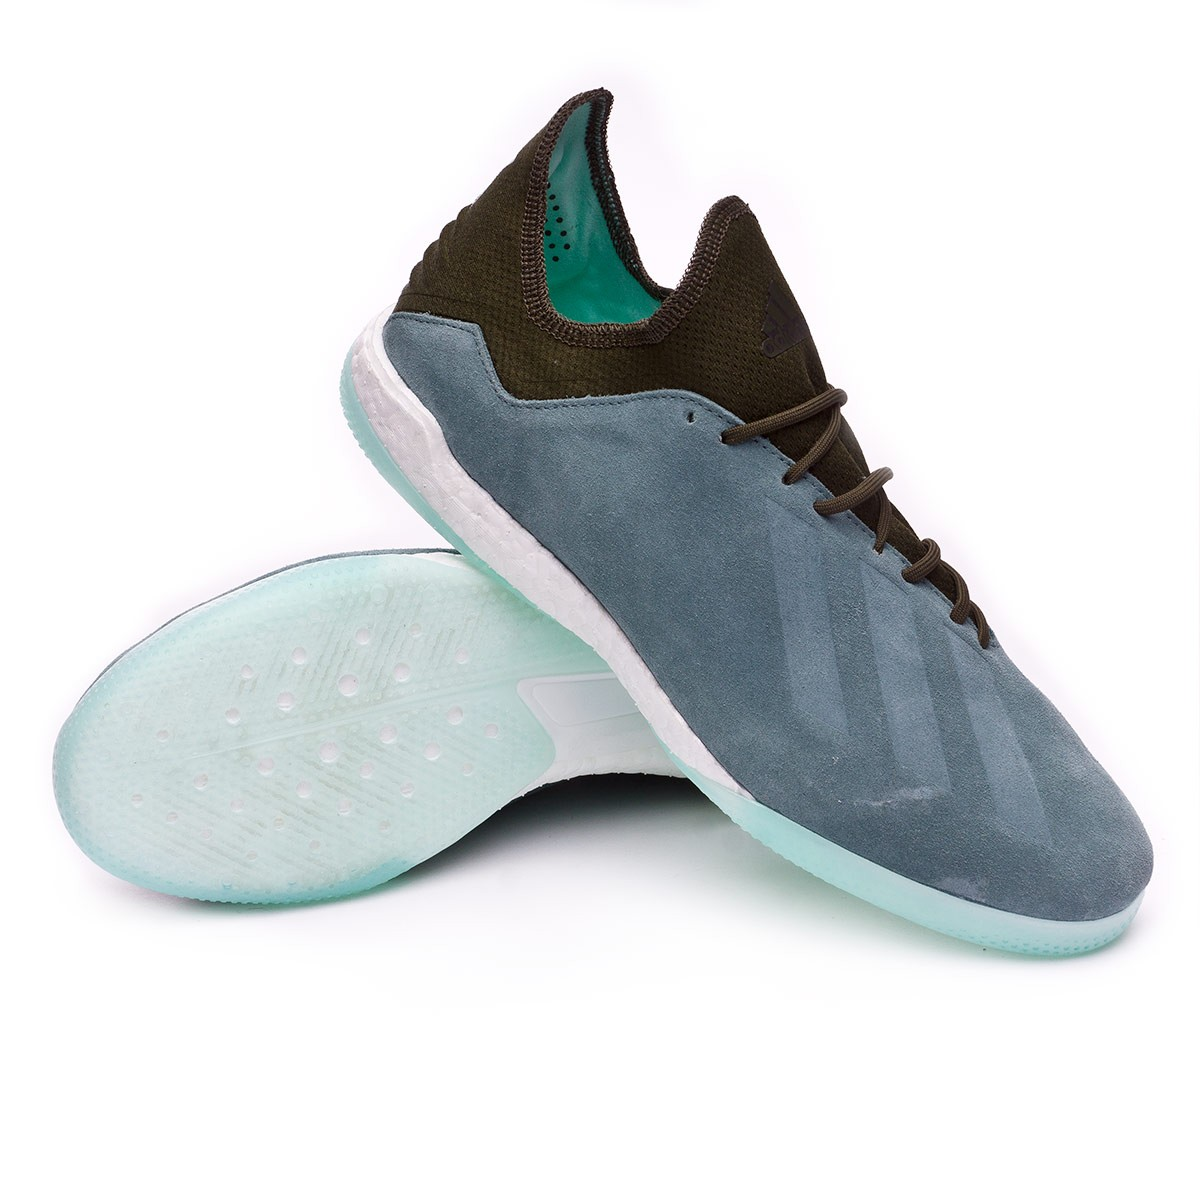 3c06a2e92 Trainers adidas X Tango 18.1 TR Raw green-Night cago-Clear mint ...